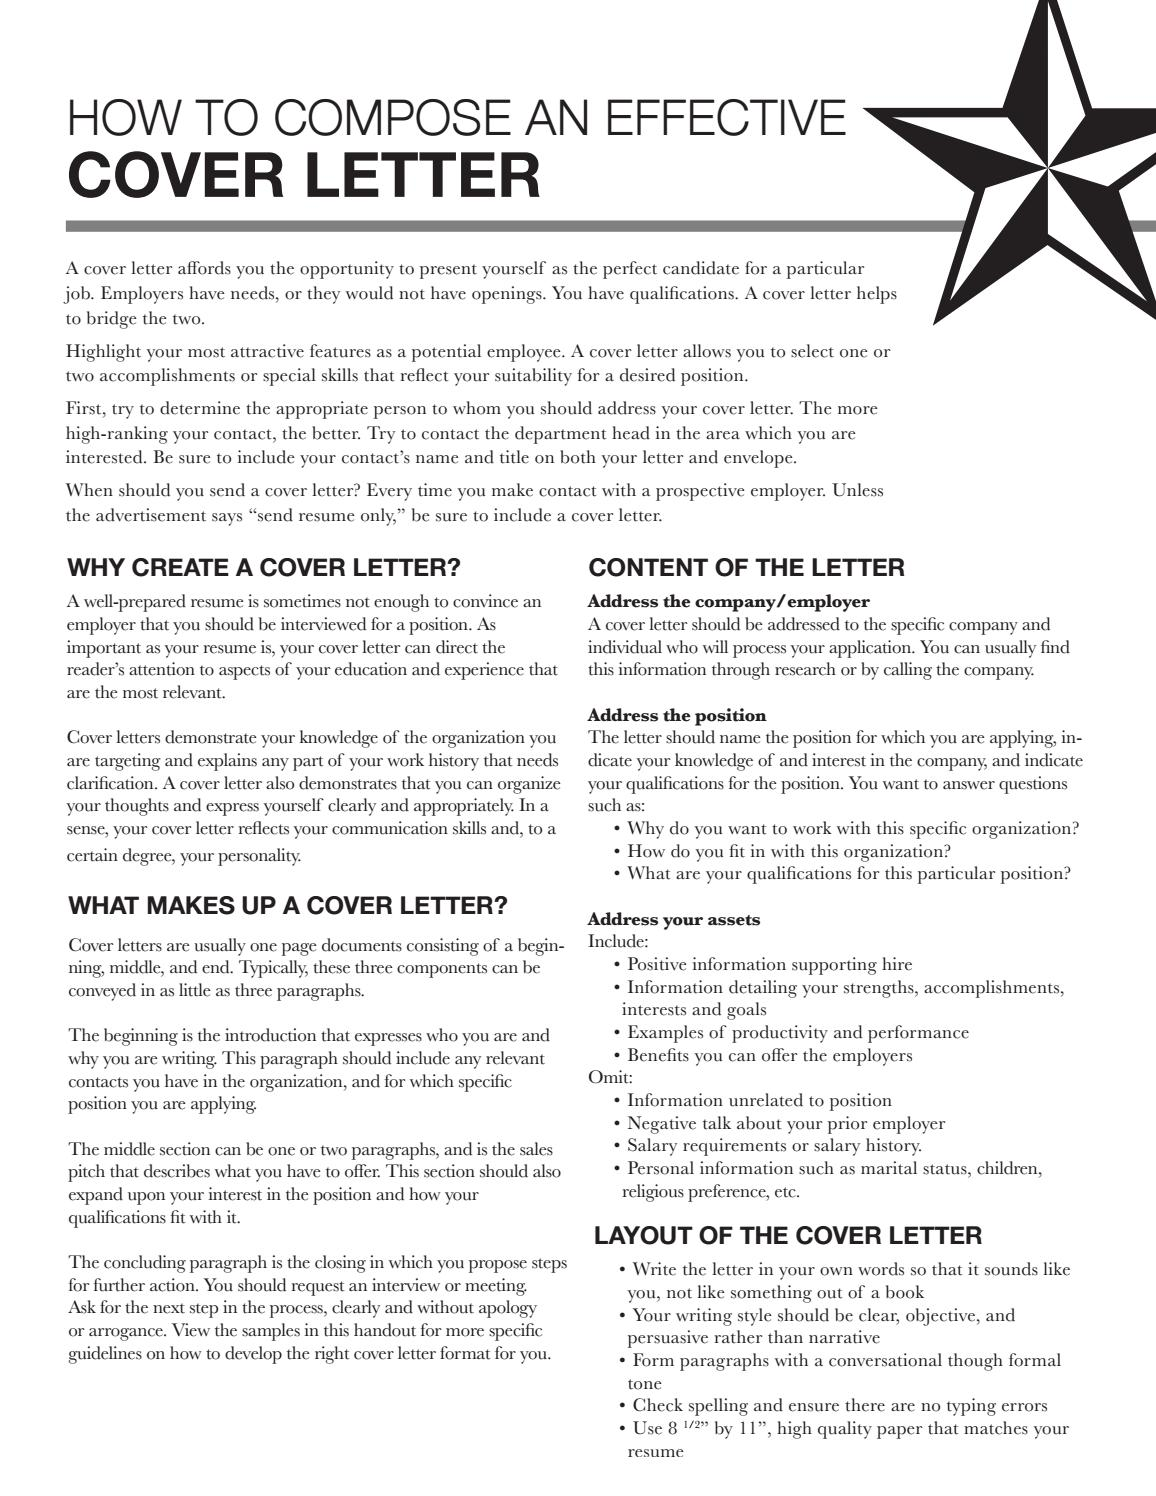 cover letter by texas state university career services